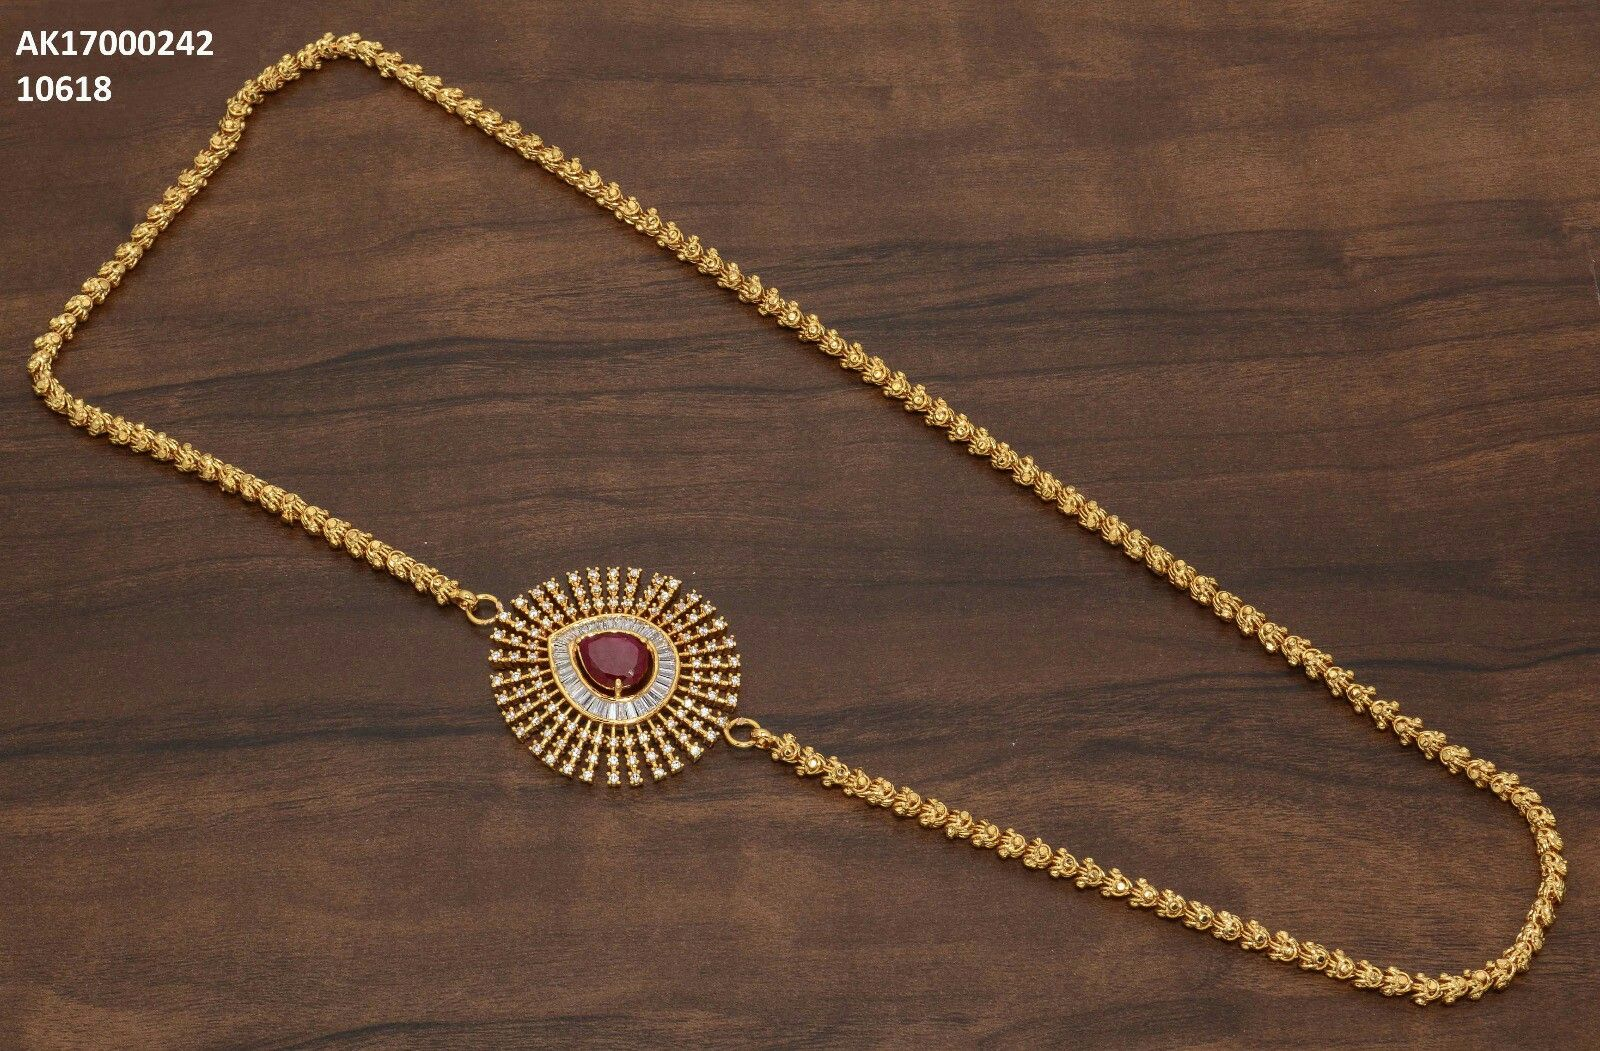 Pin by akila orre on Jewellery Pinterest Chains India jewelry